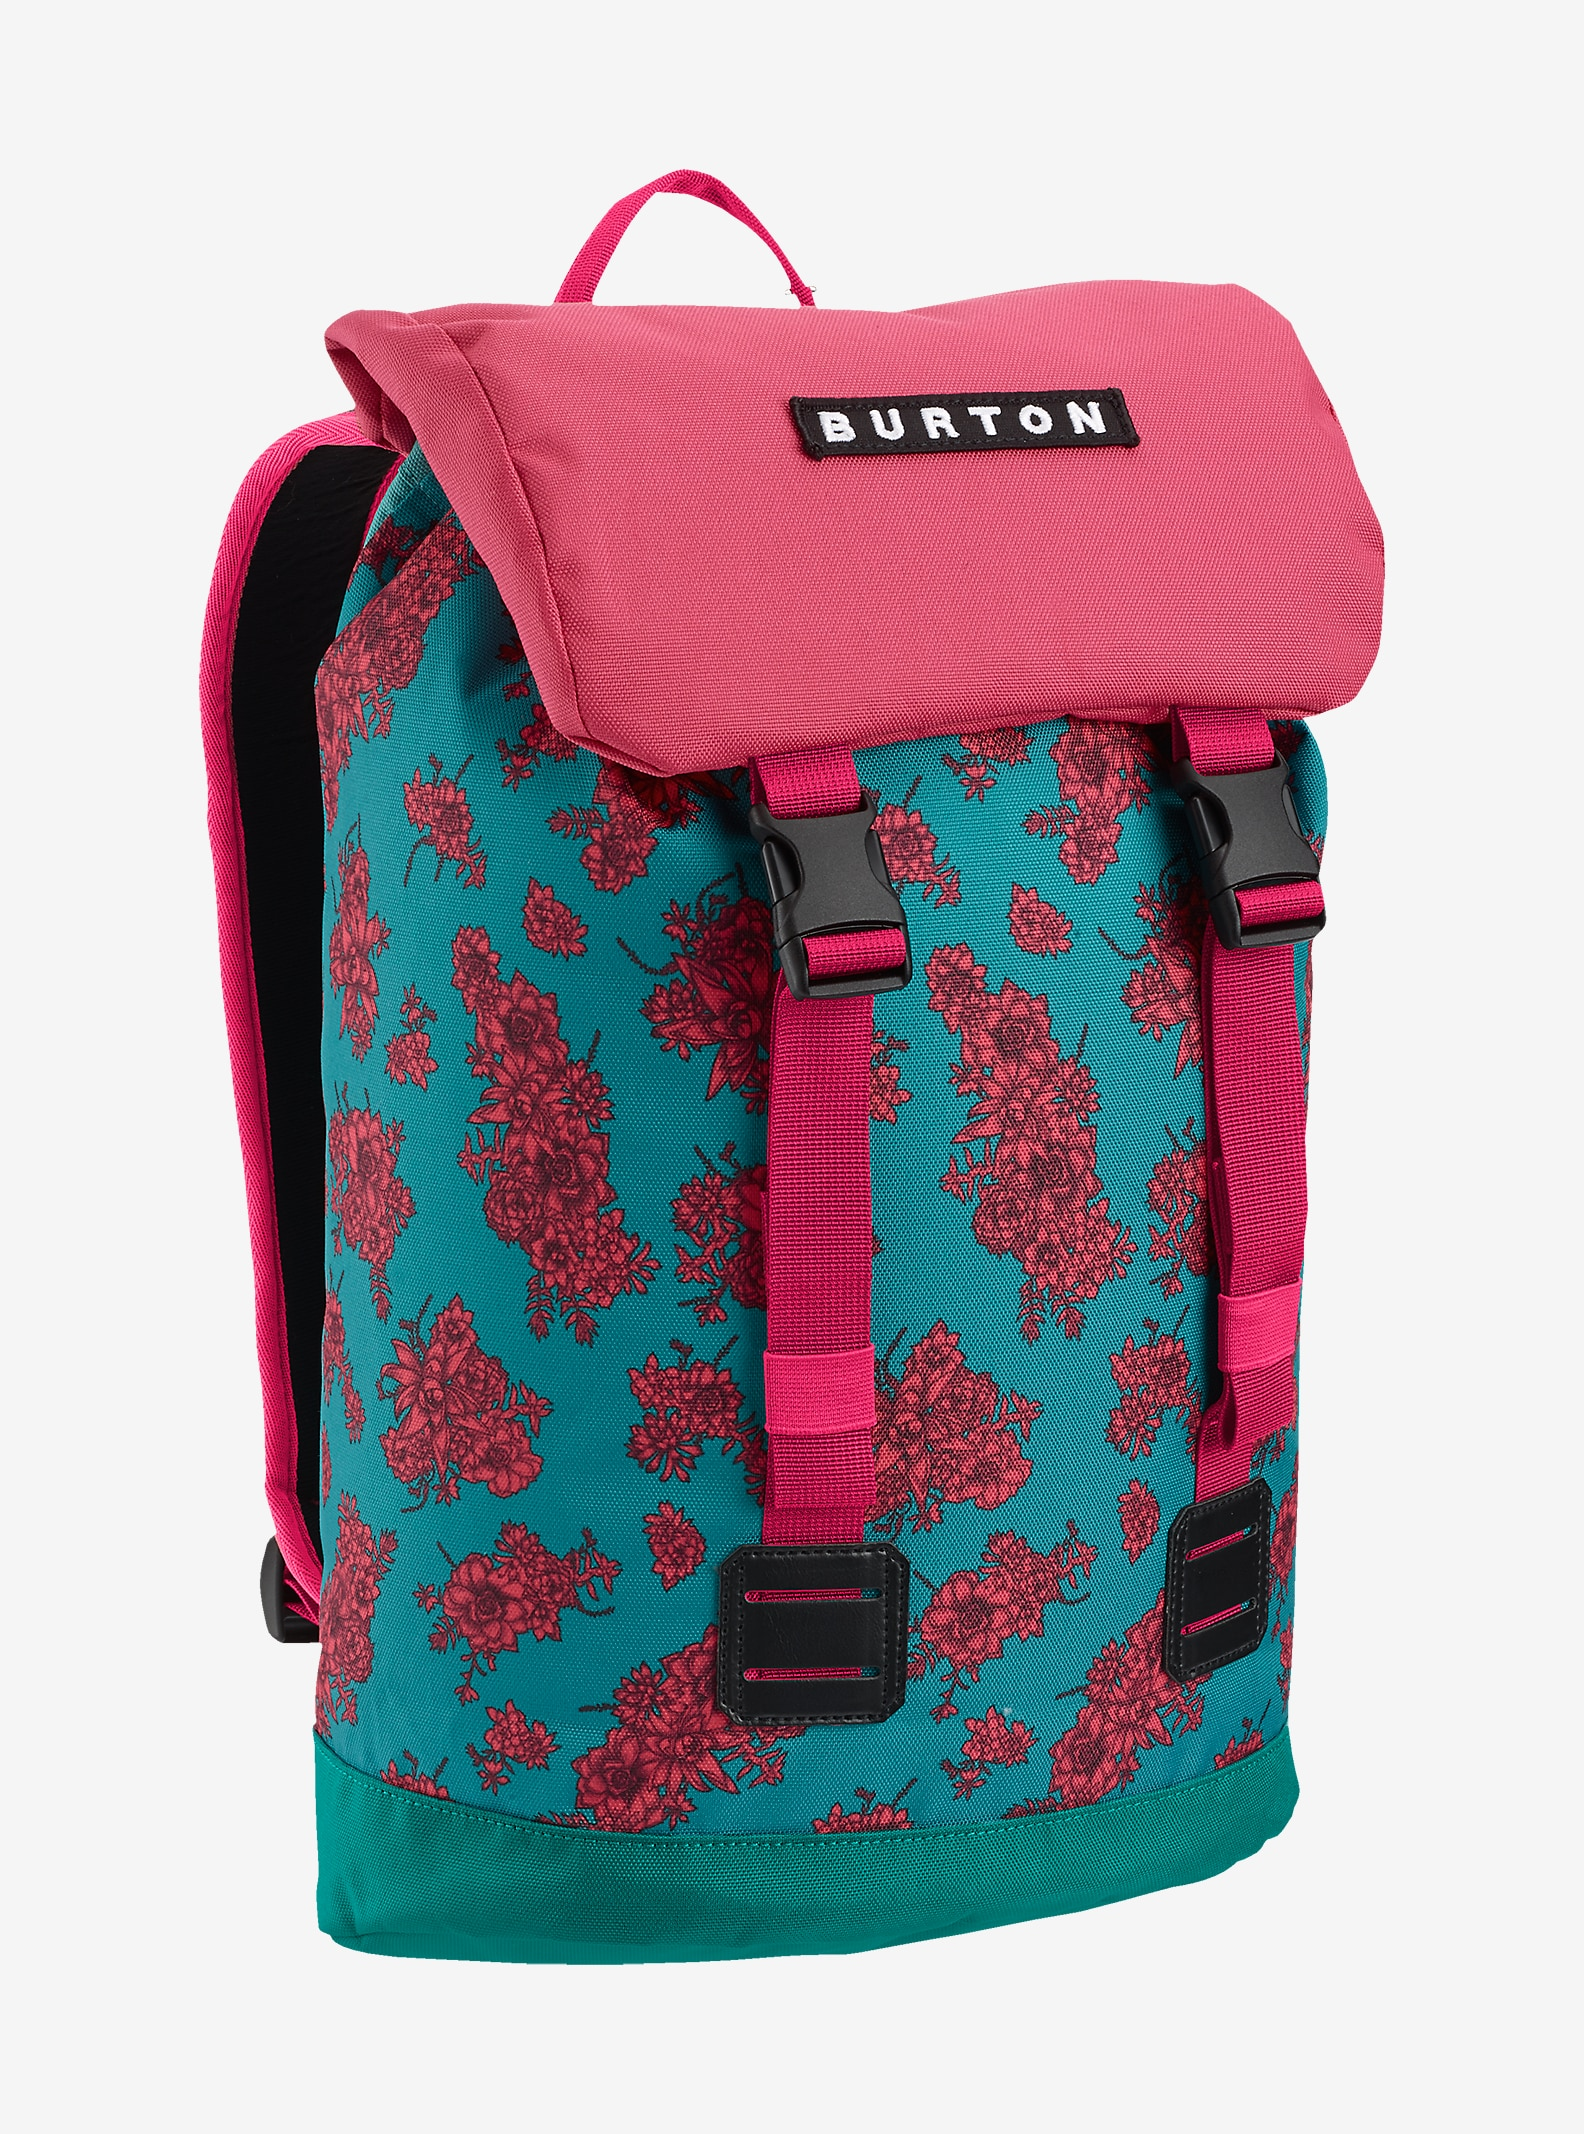 Burton Youth Tinder Backpack shown in Paradise Succulent